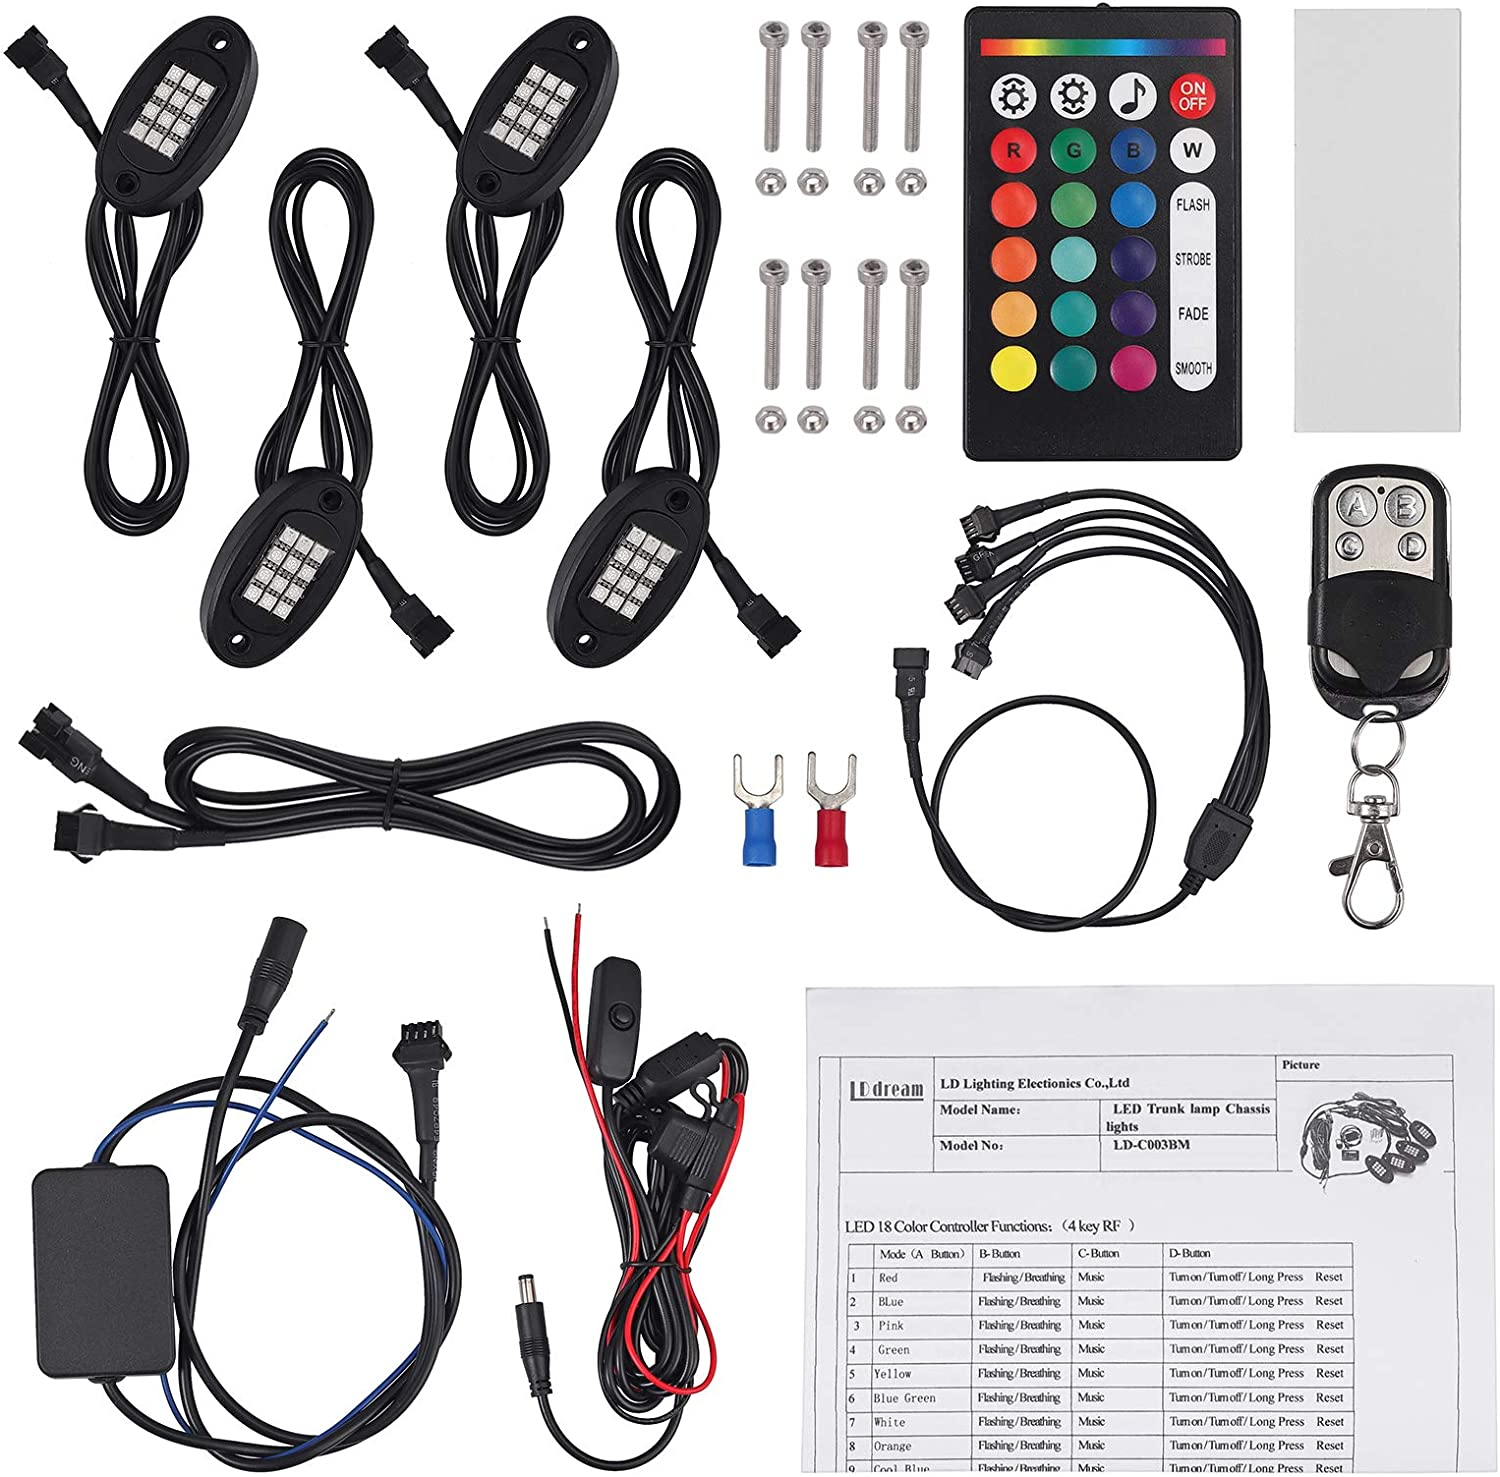 Justech 4 Pods RGB LED Rock Light Kits Multicolor Underglow Neon Light Kit with Extension Cord and Double Wireless RF Controllers for Truck ATV SUV Car Boat Motorcycle